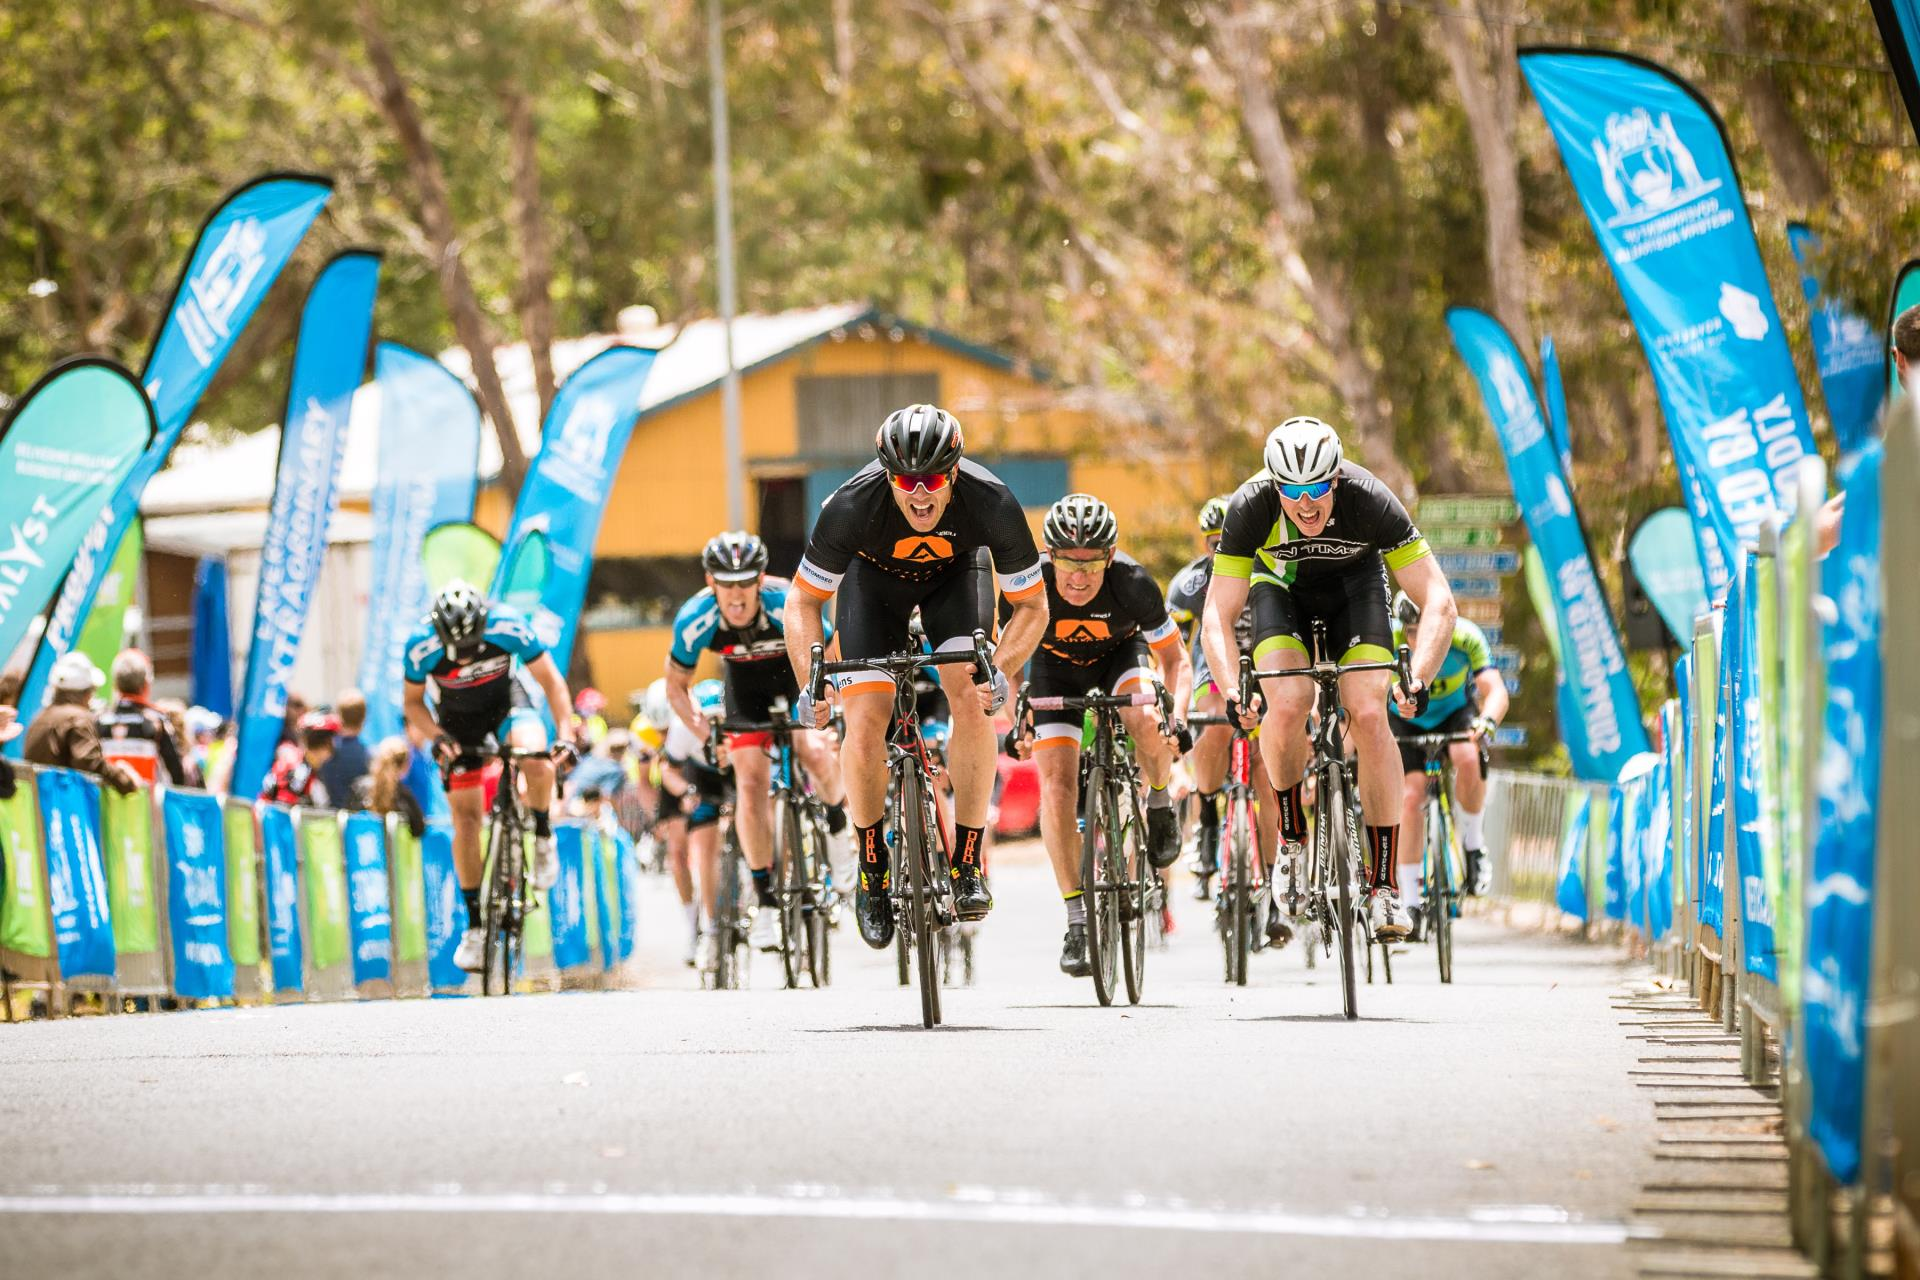 Tour of Margaret River